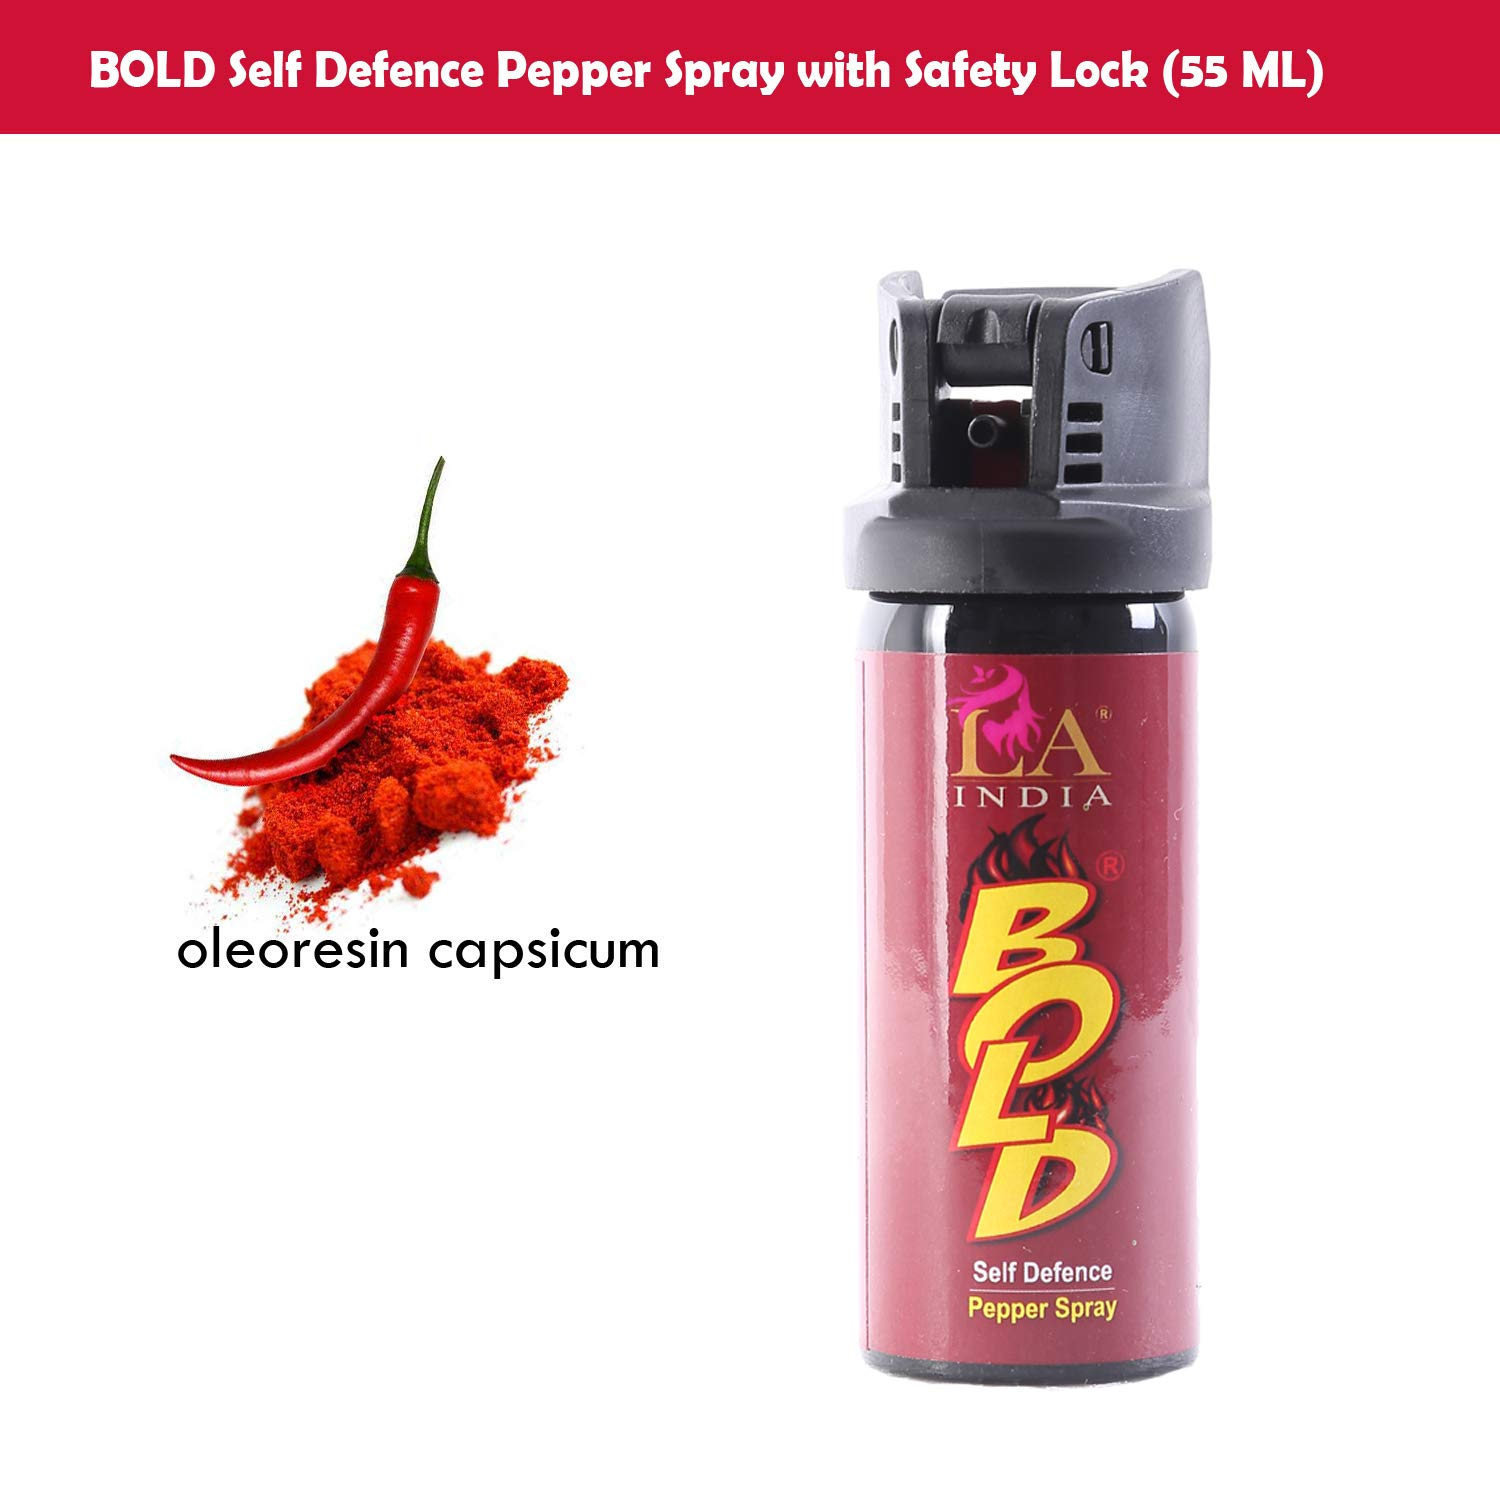 BOLD Self Defence Pepper Spray for Women Safety Lock (55 ML)